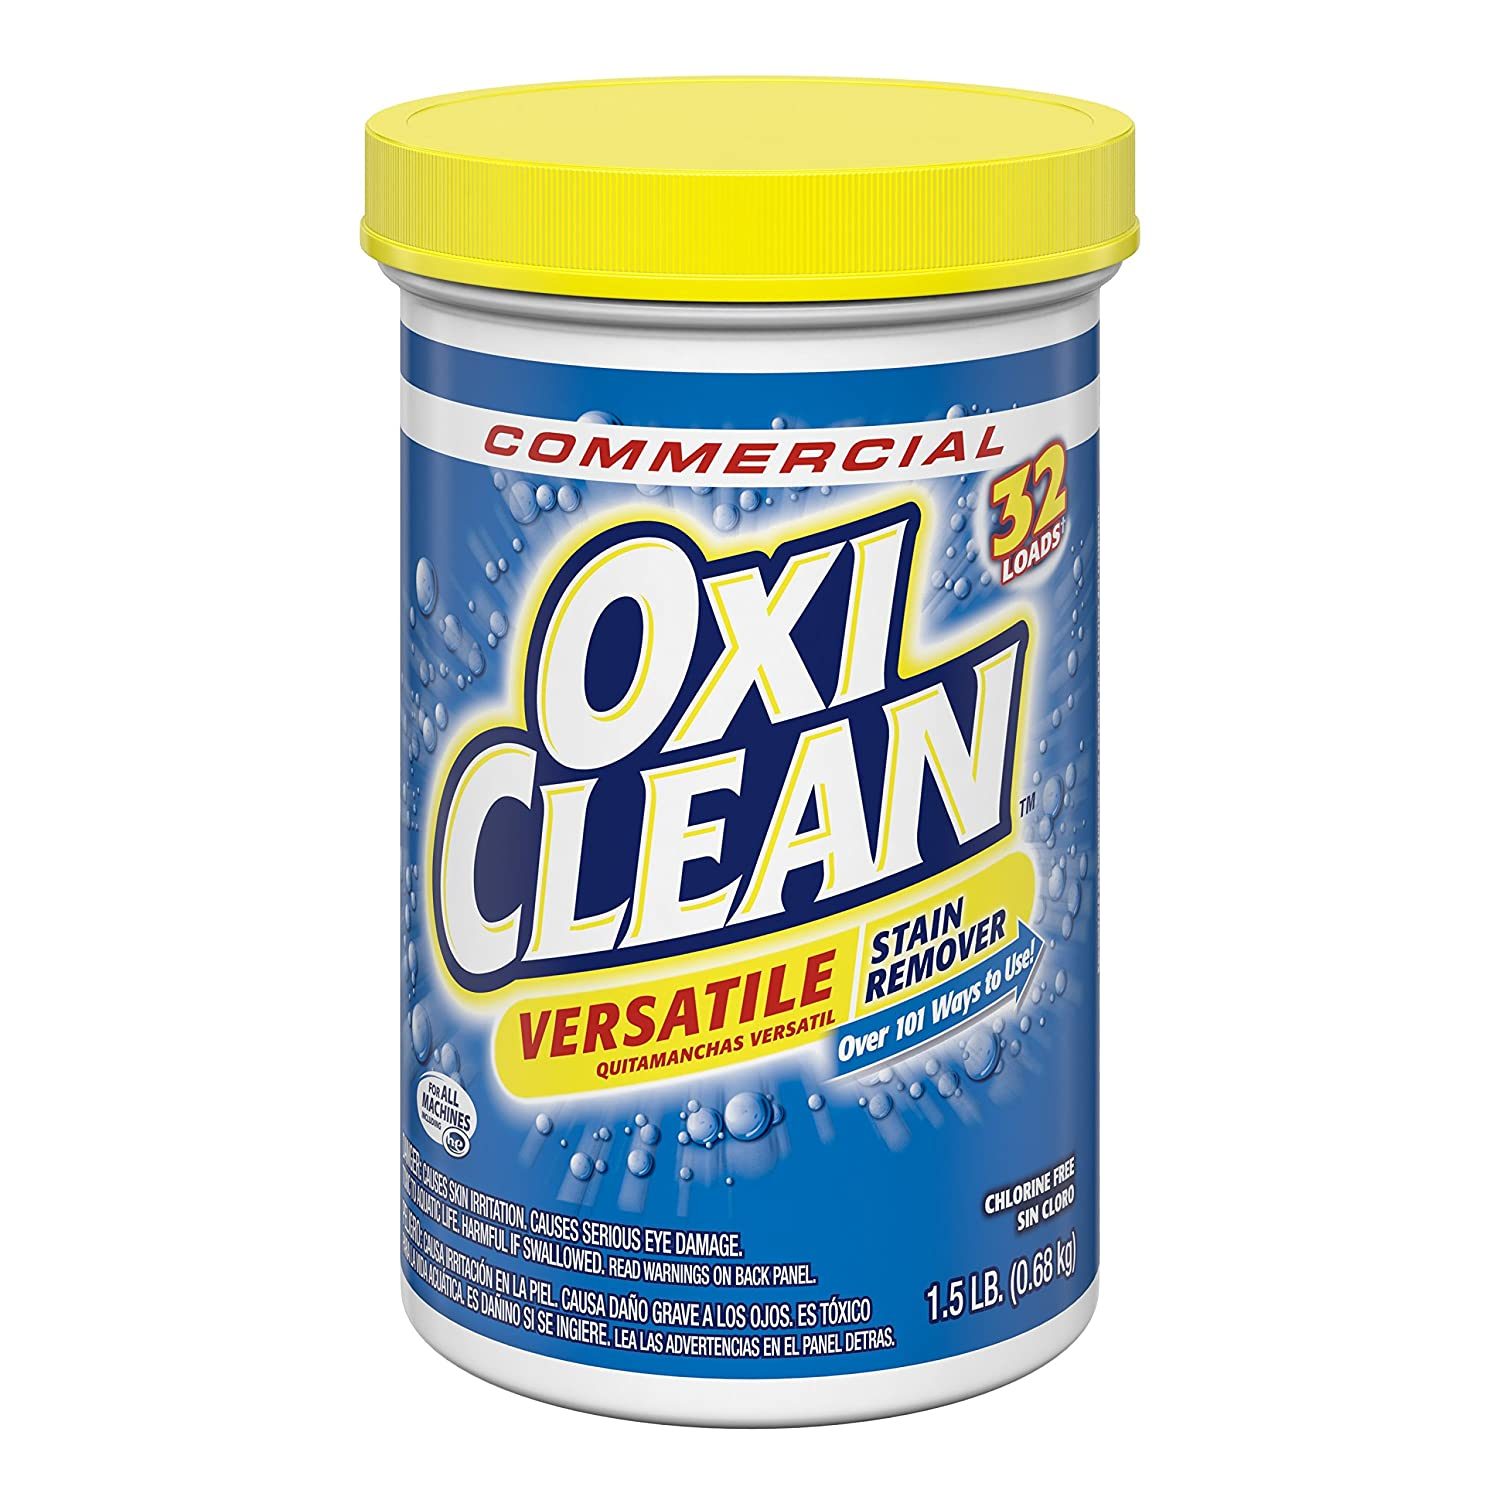 Amazon.com: Oxiclean 57037-01211 Versatile Stain Remover 1.5lb, 32 Loads (Pack of 12): Industrial & Scientific